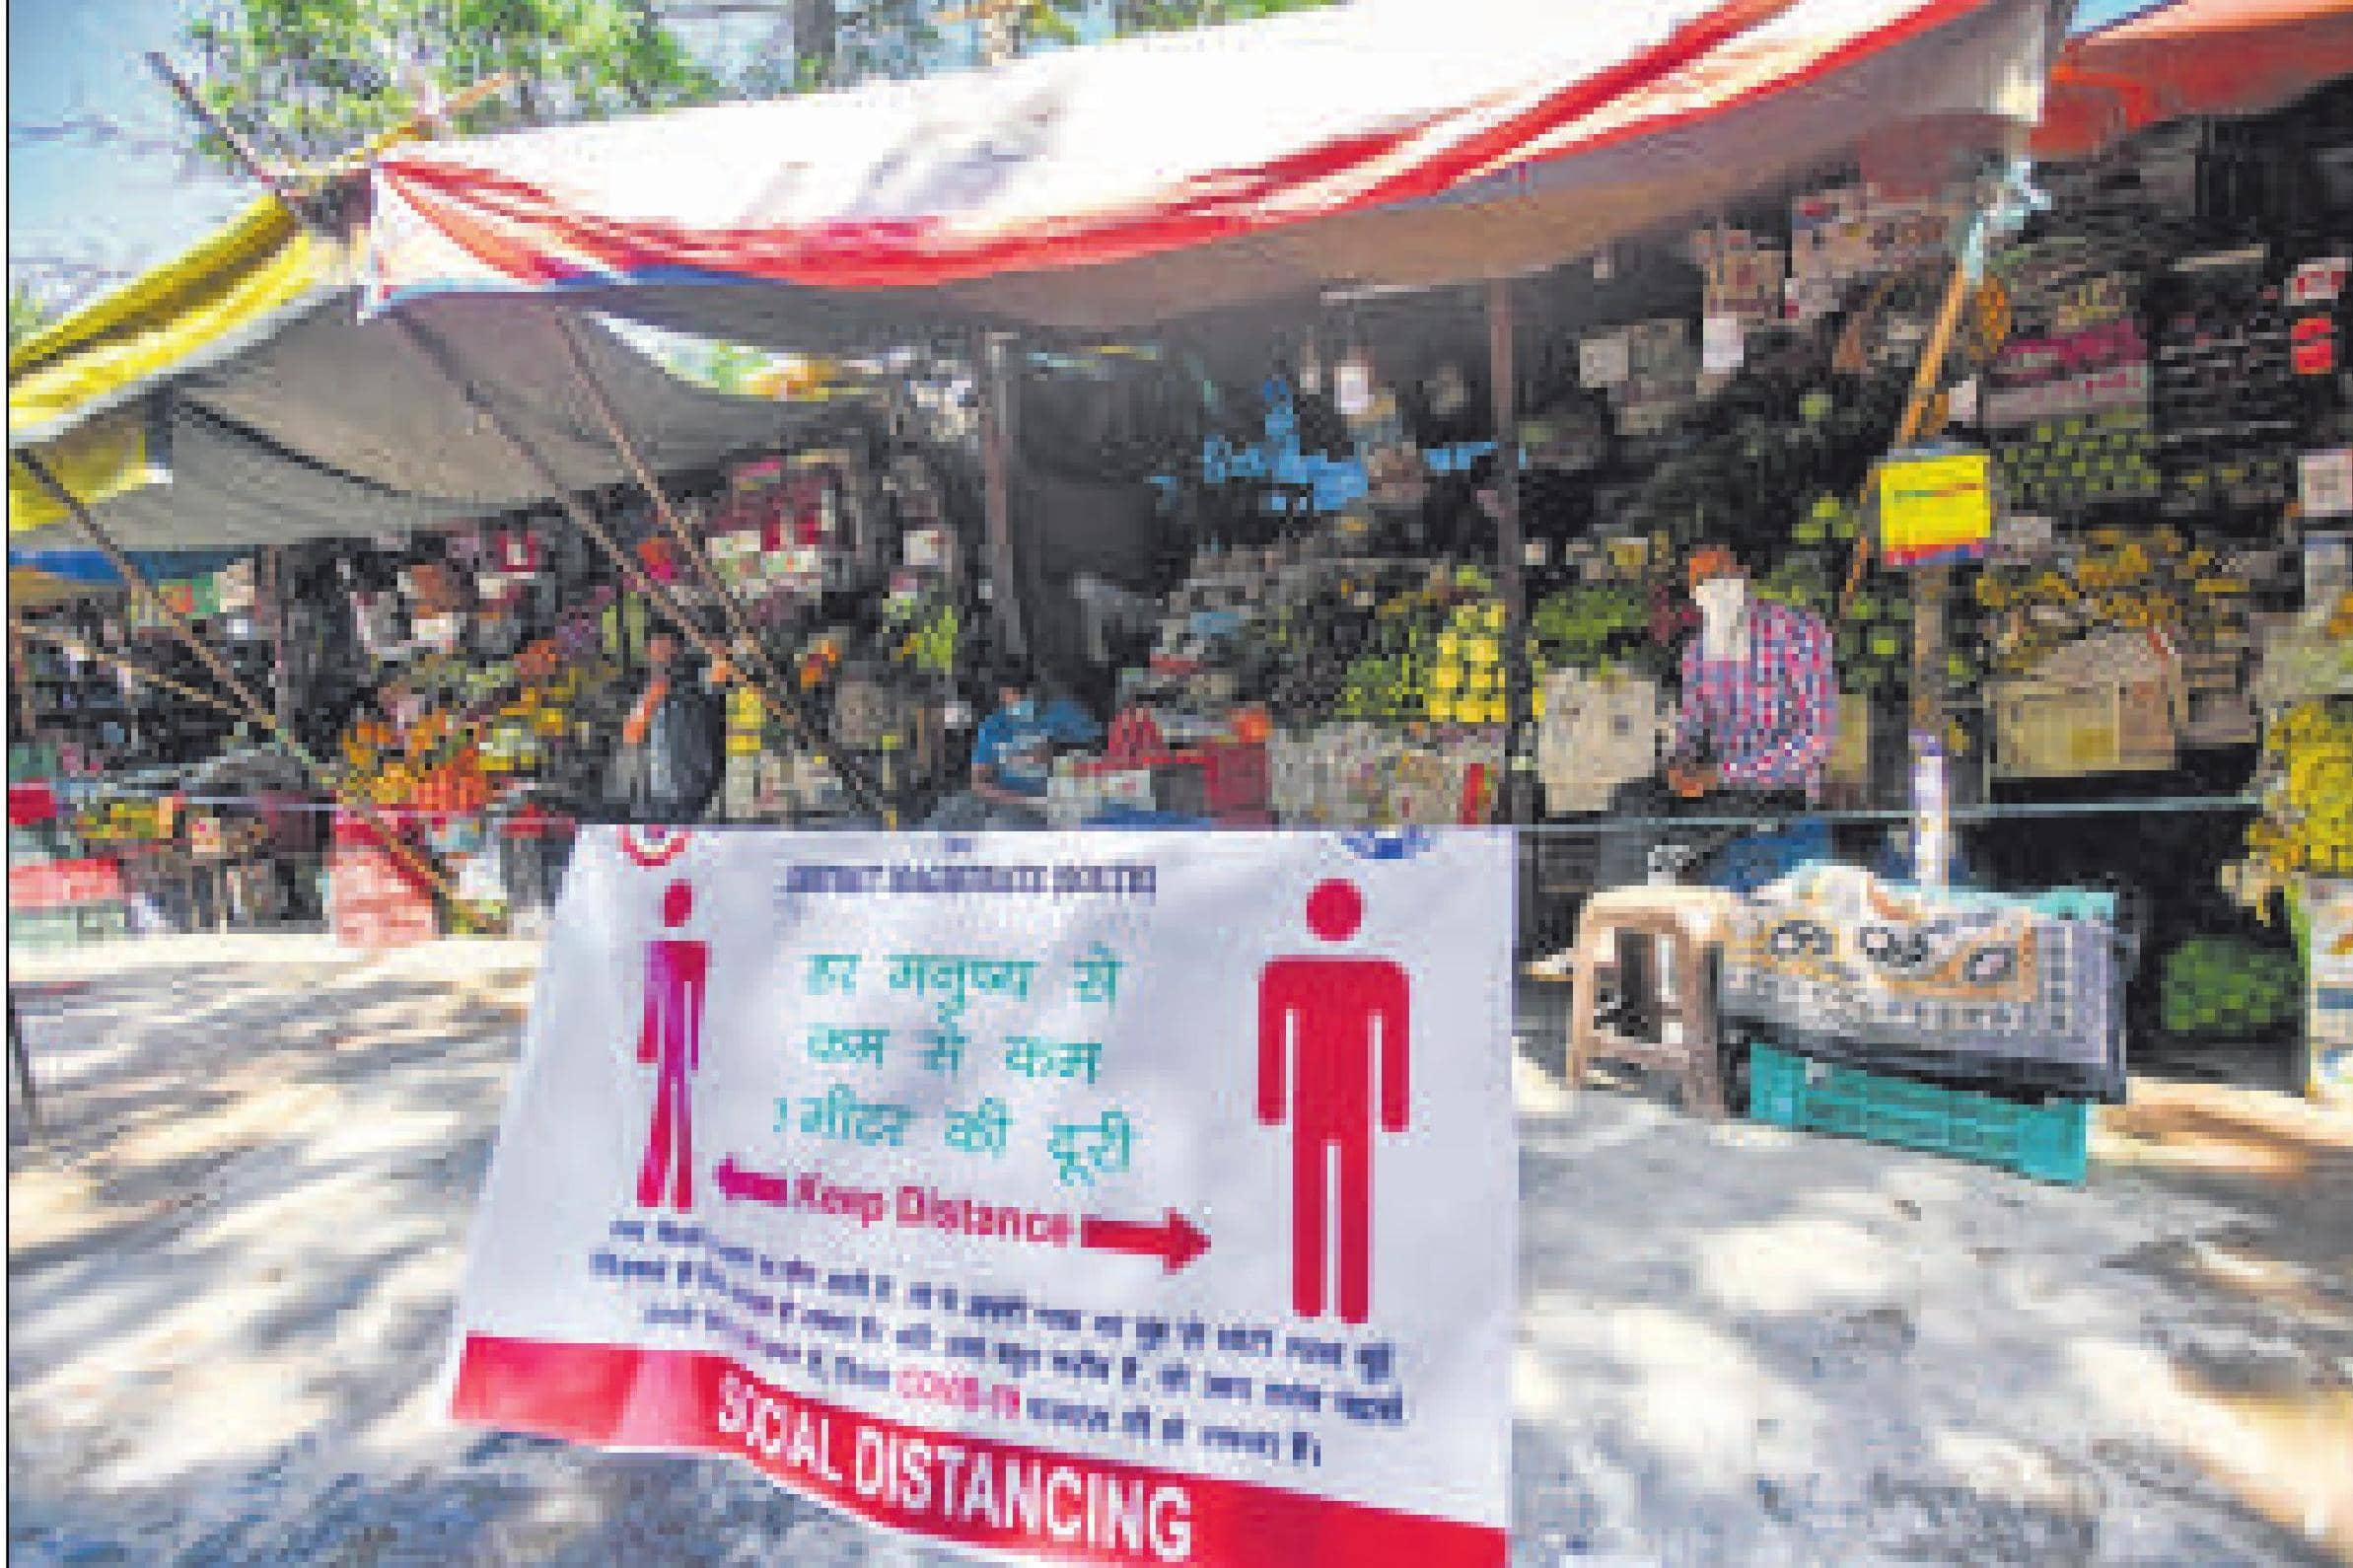 Proactive approach helps Saket cope with isolation